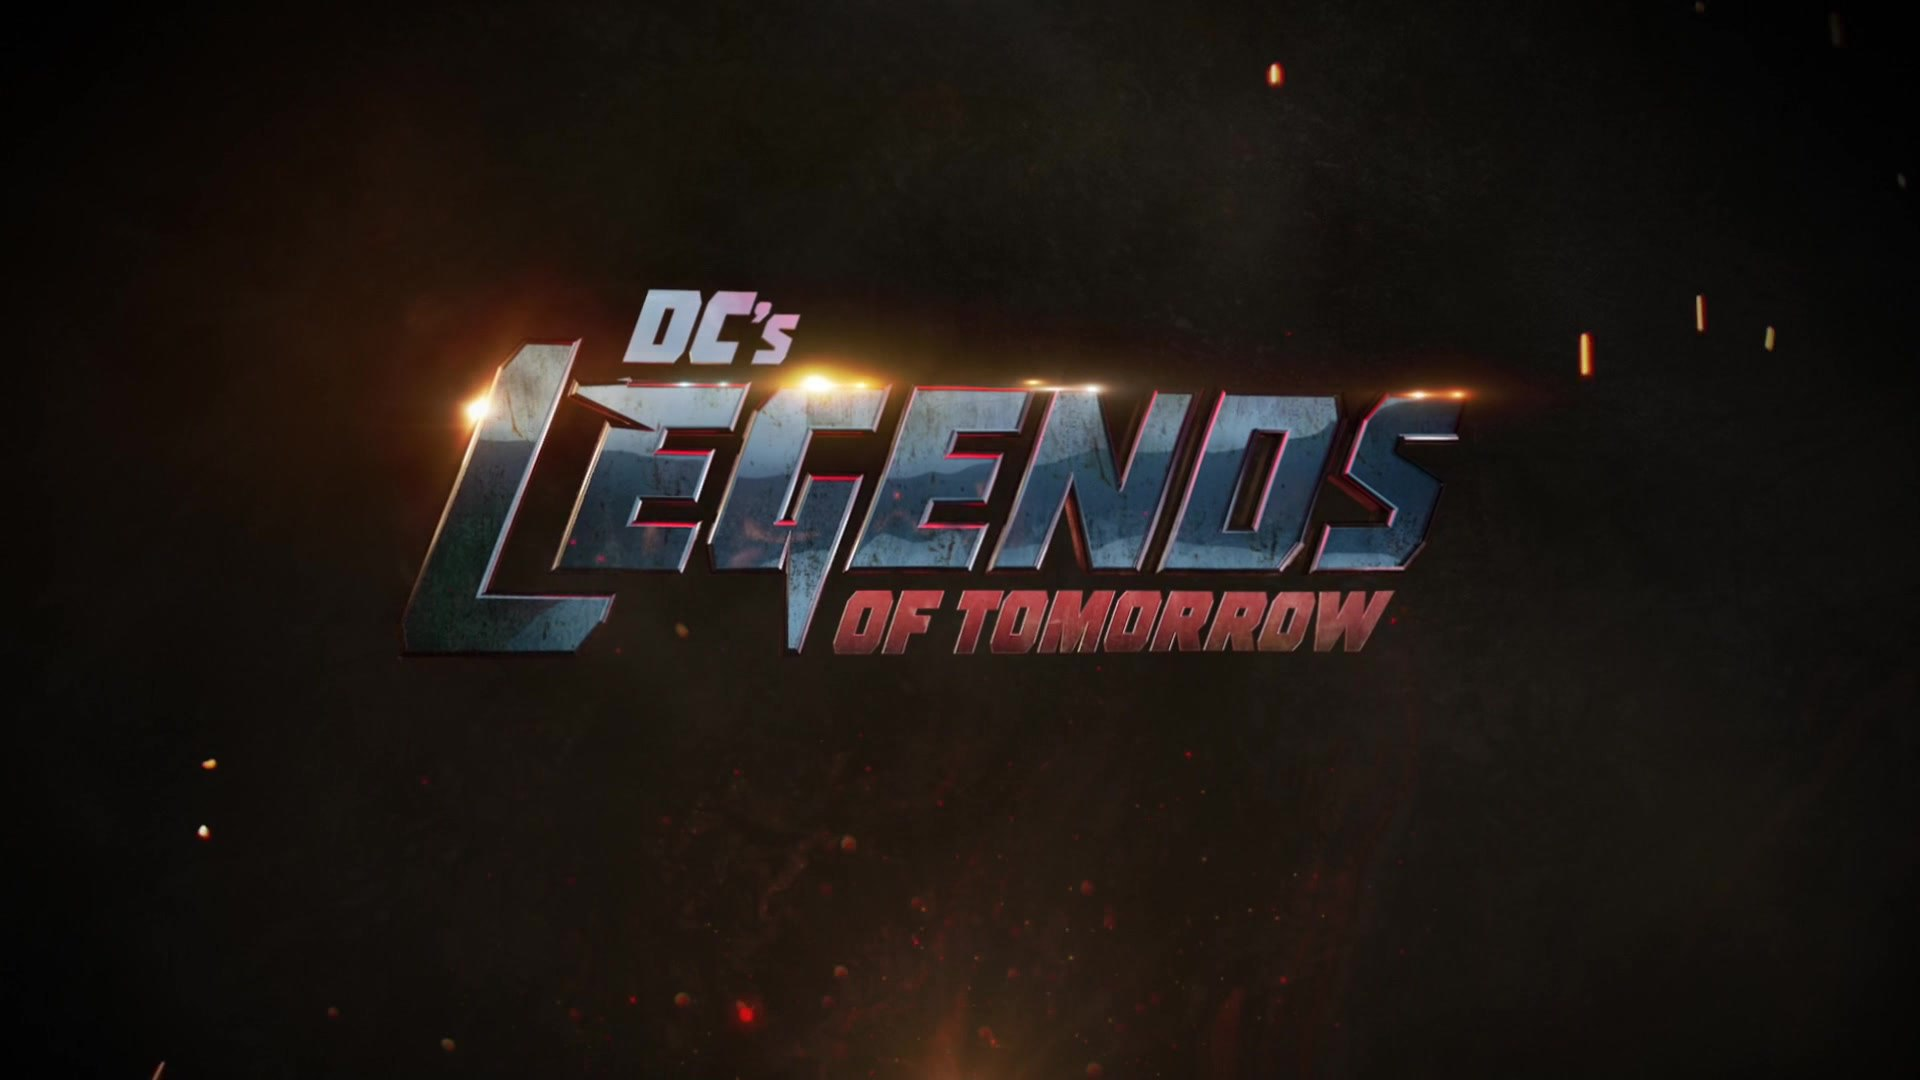 DC's Legends of Tomorrow (TV Series) Episode: The Legion of Doom